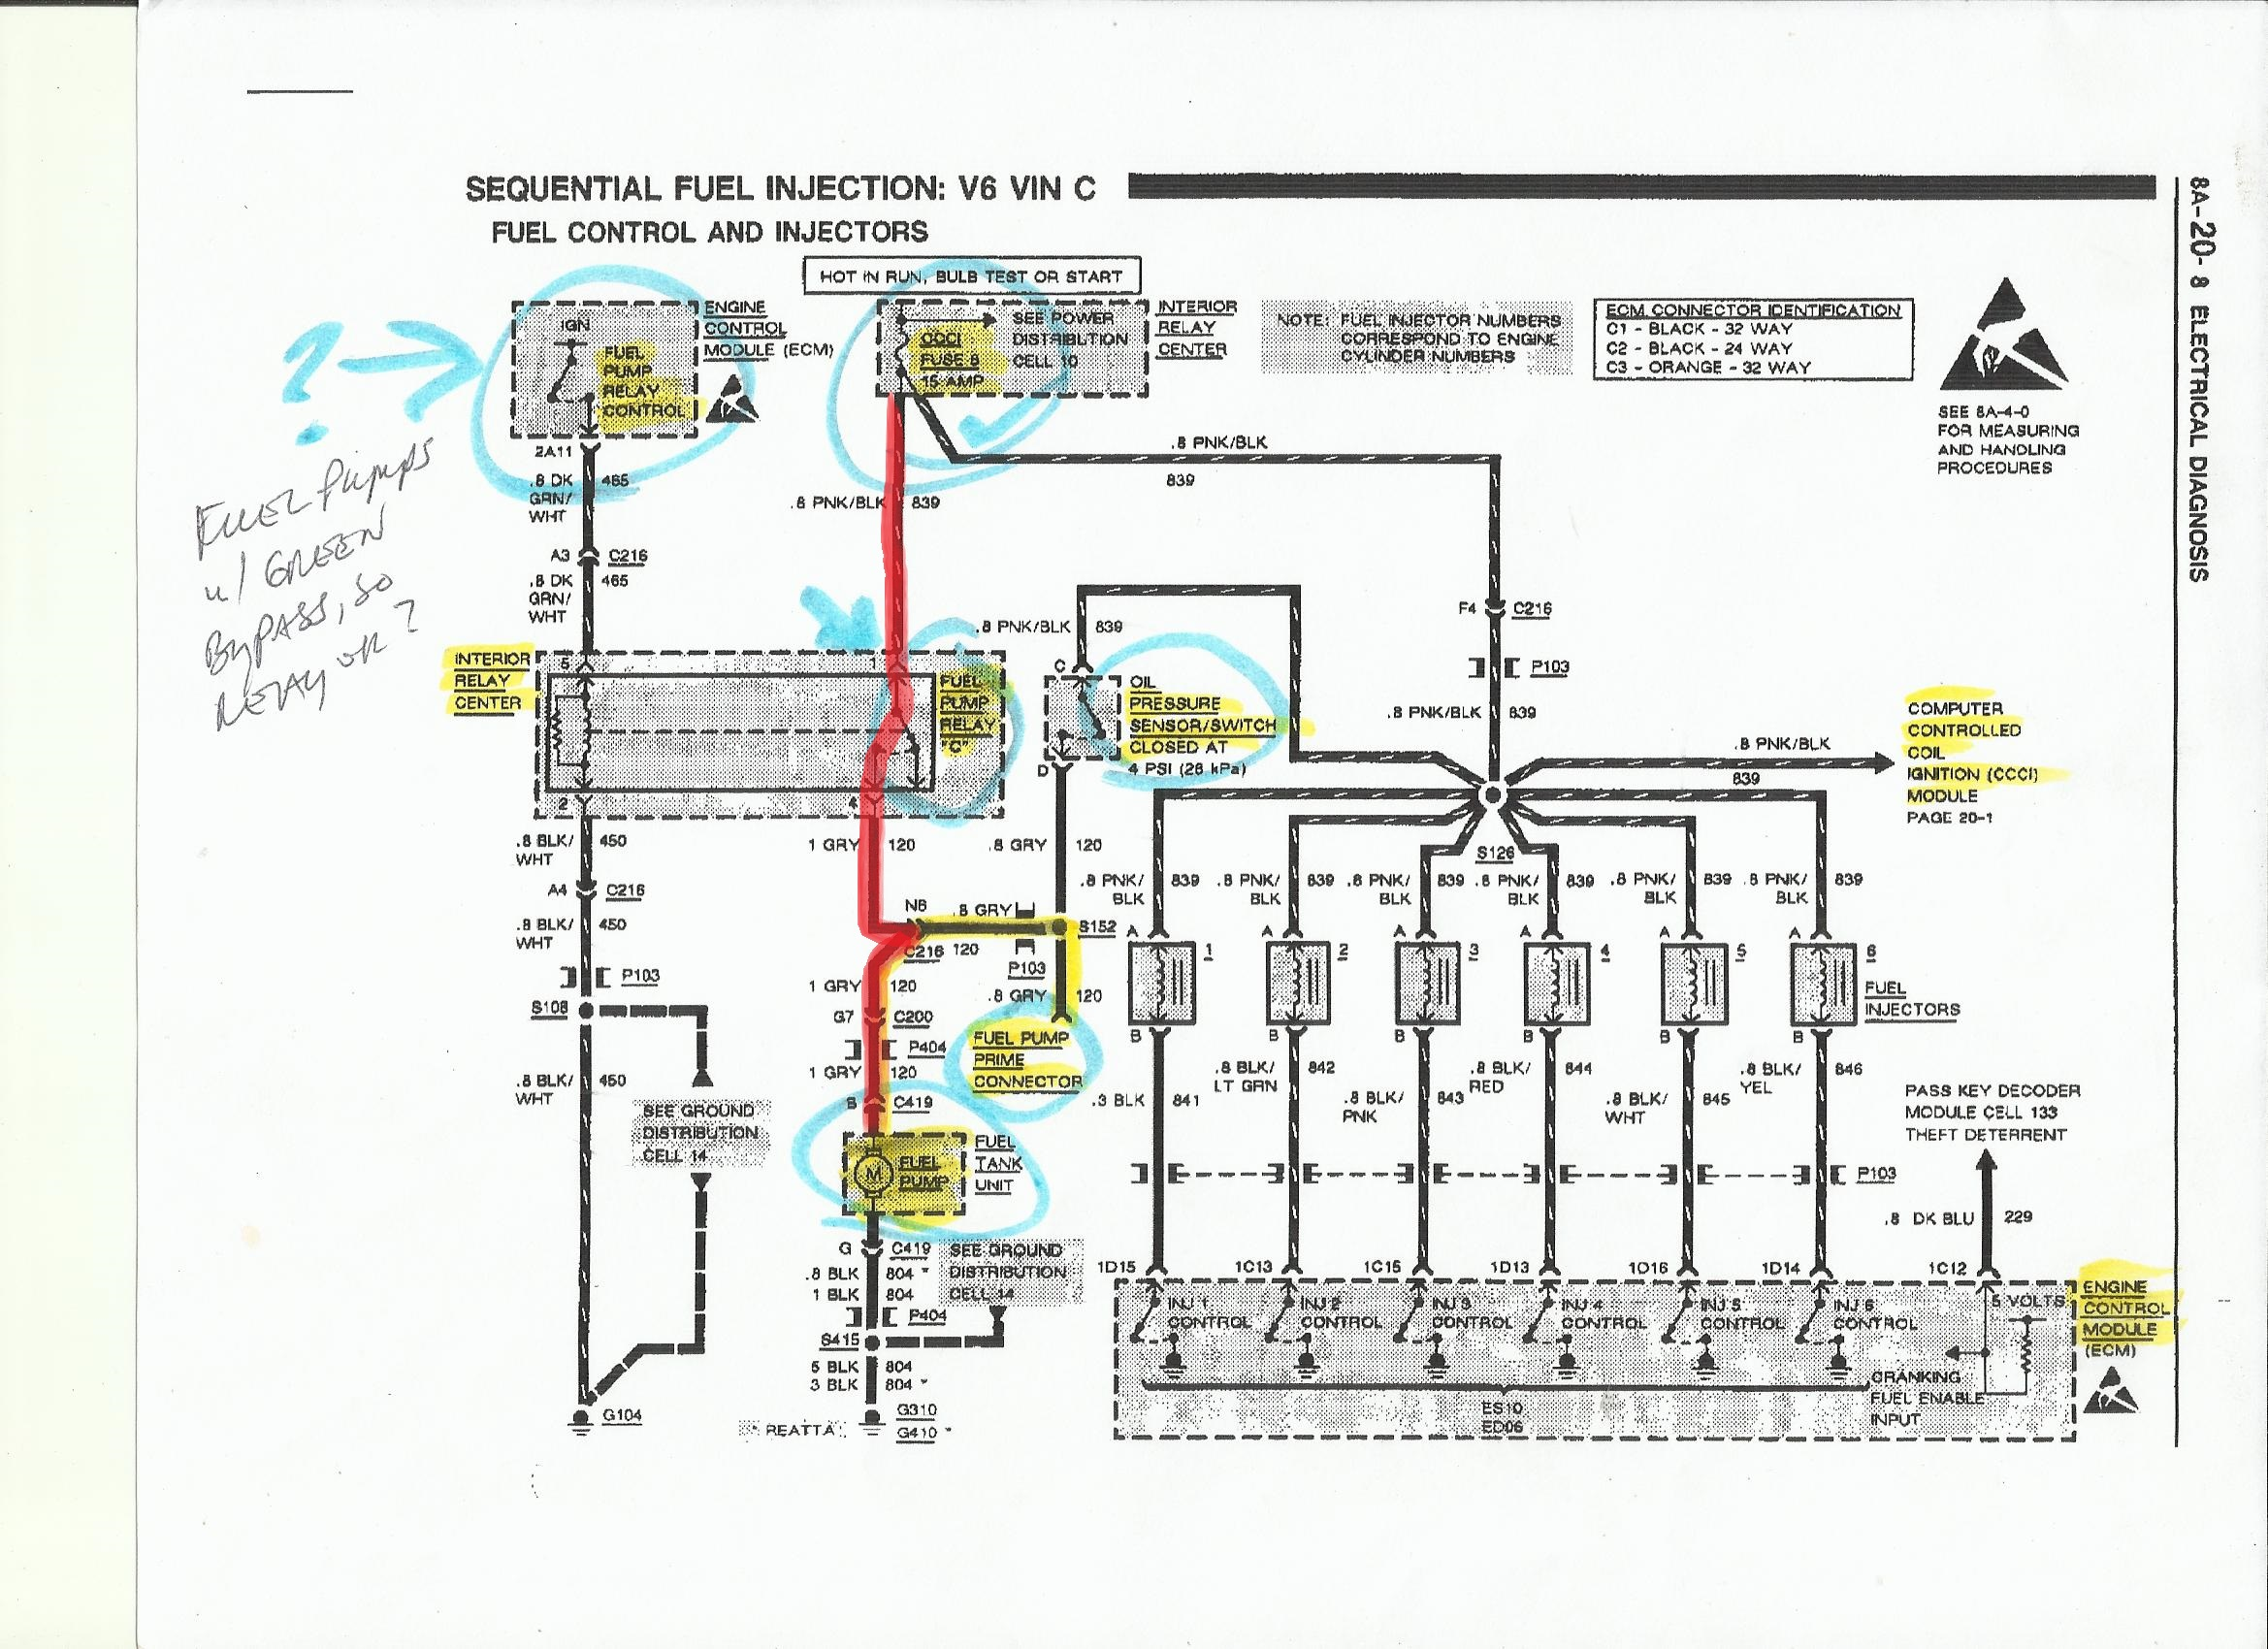 Buick Reatta Wiring Diagram Starting Know About Fuse Box Crank No Start Antique Automobile Club Of America Rh Forums Aaca Org